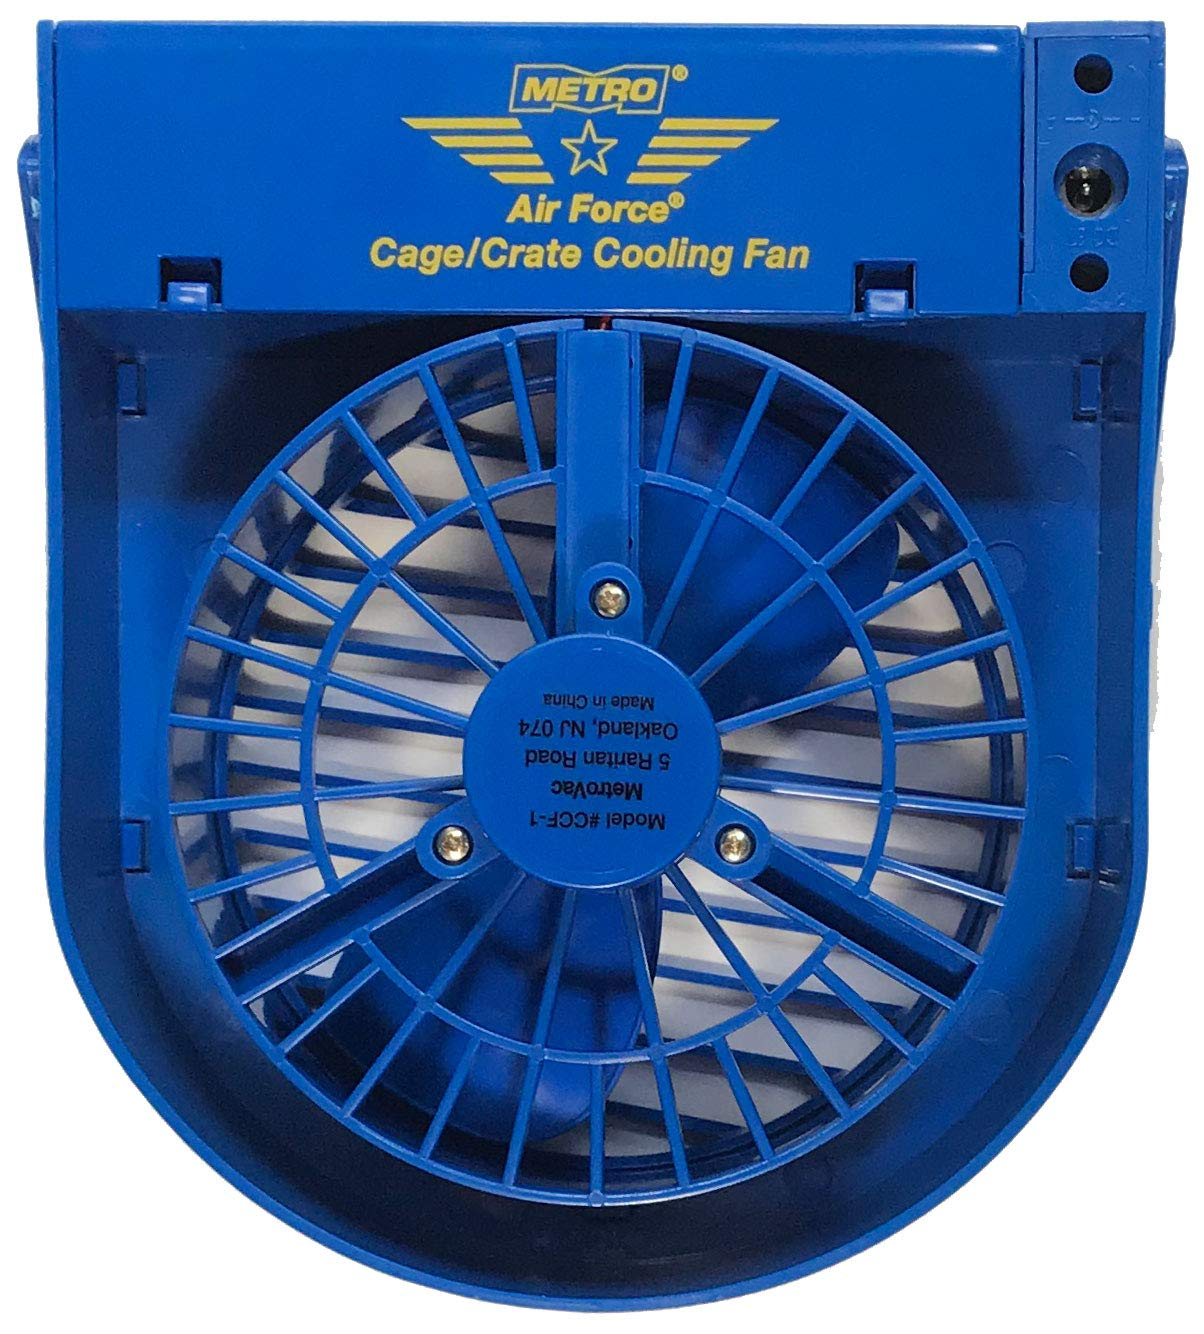 Metropolitan Vacuum Cleaner Co MV04500 Metro Airforce Cage and Crate Fan - 1 Count